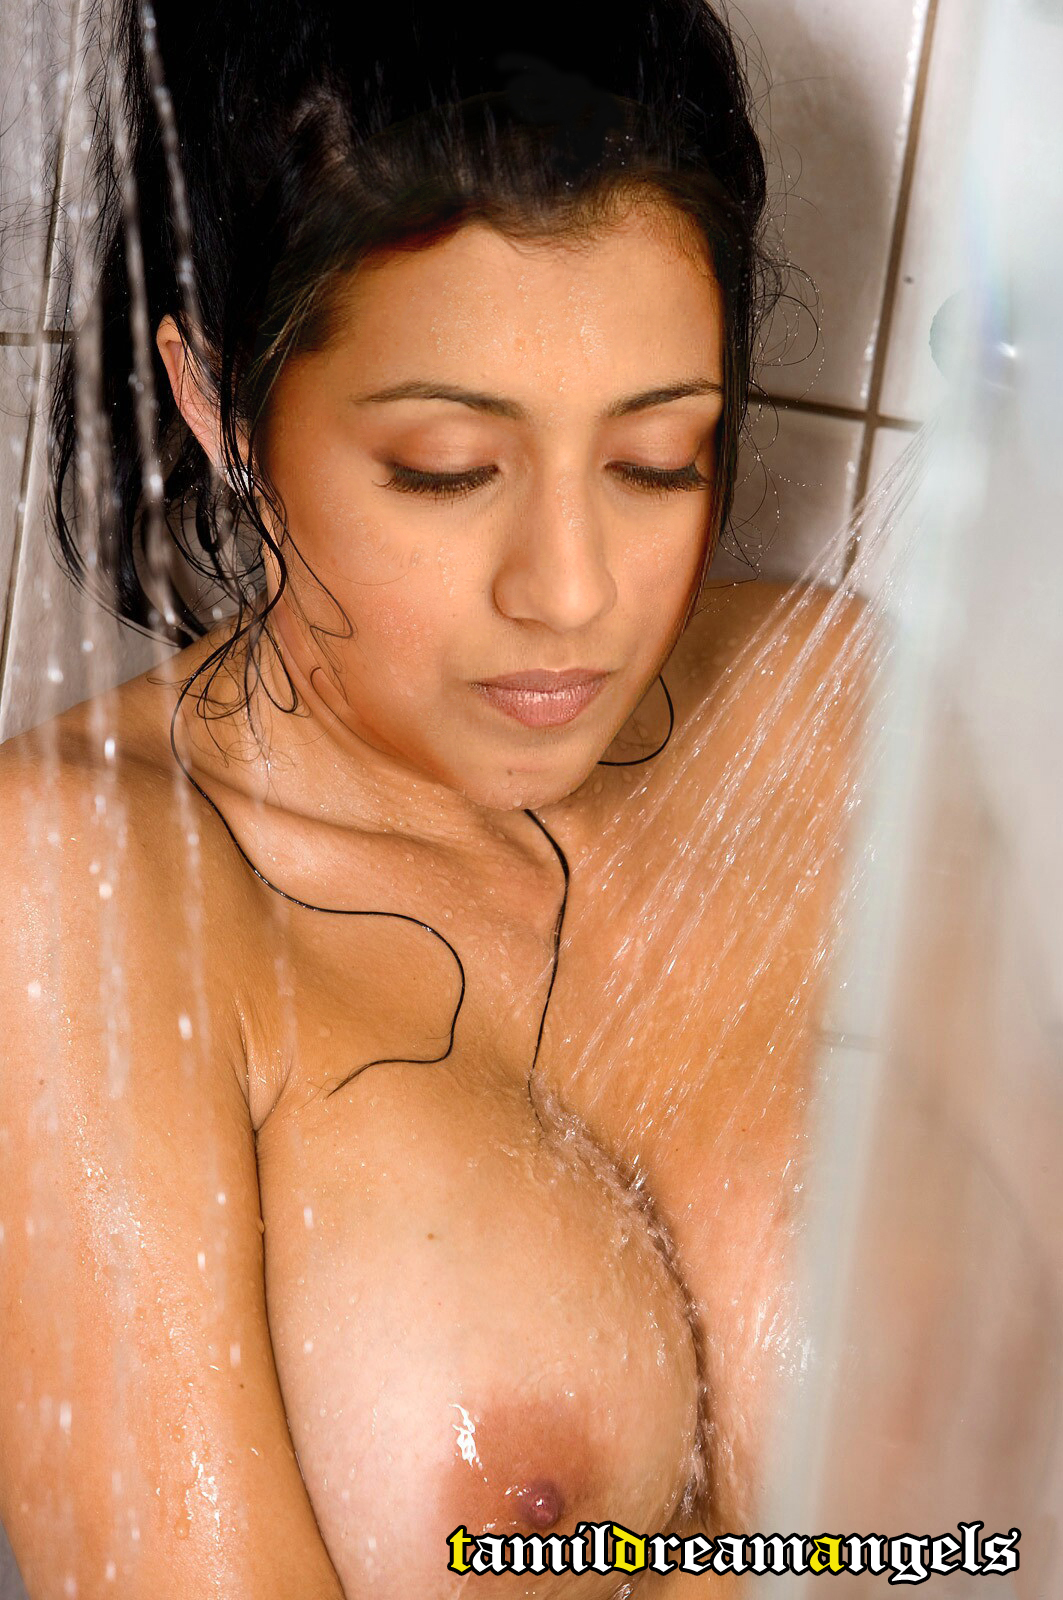 Old actress sangeetha nude photos